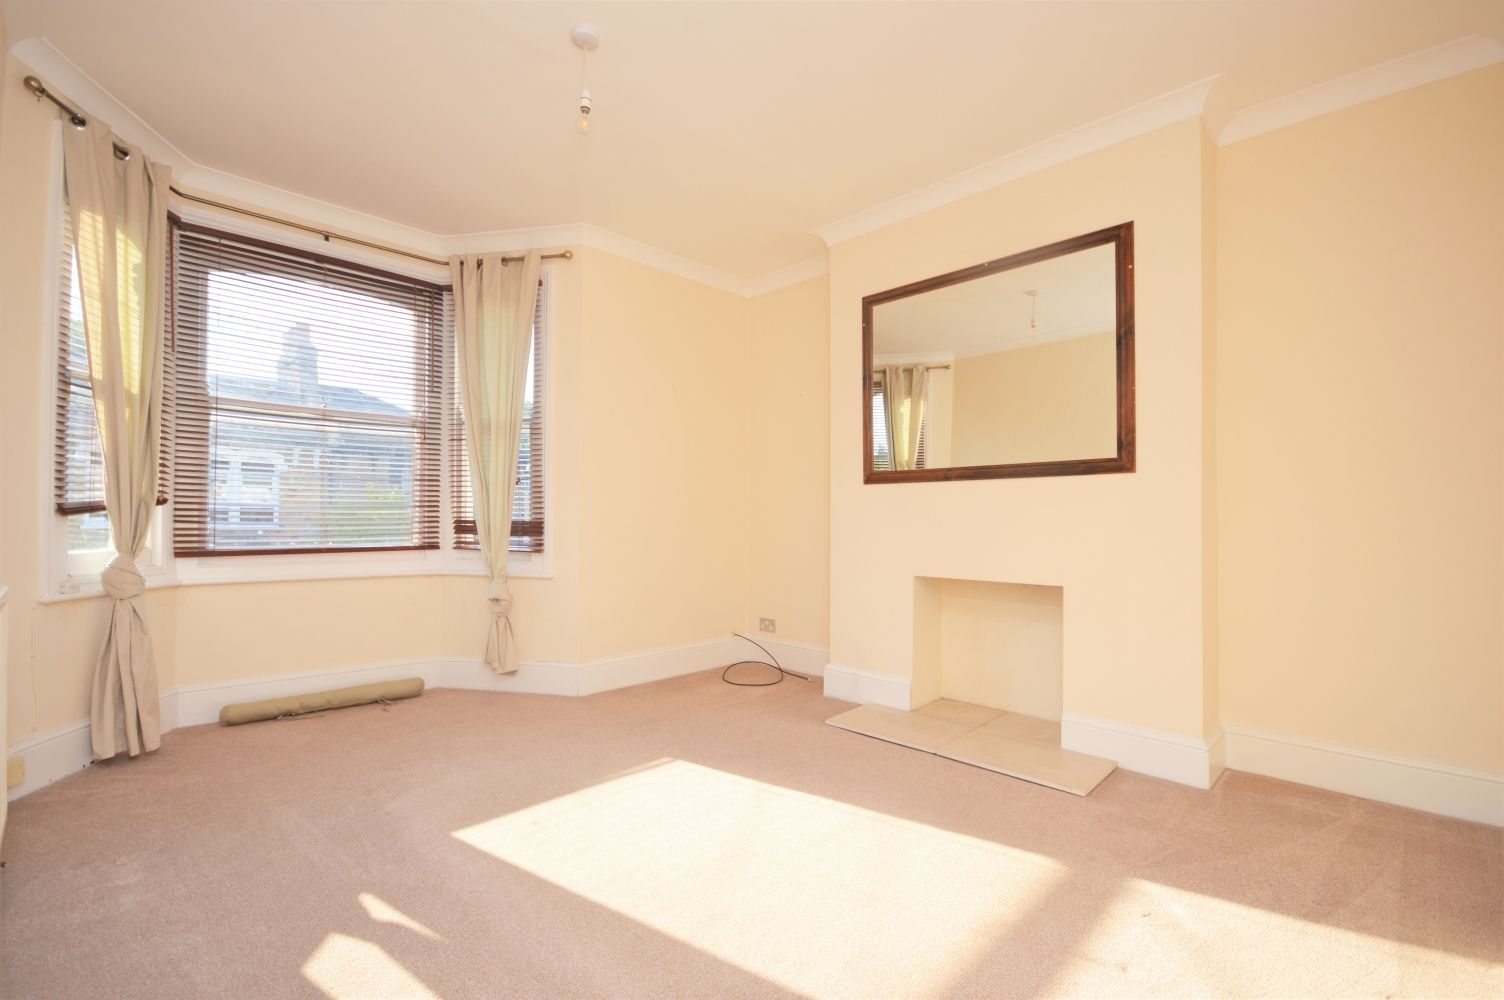 Property photo 1 of 7. Reception Room